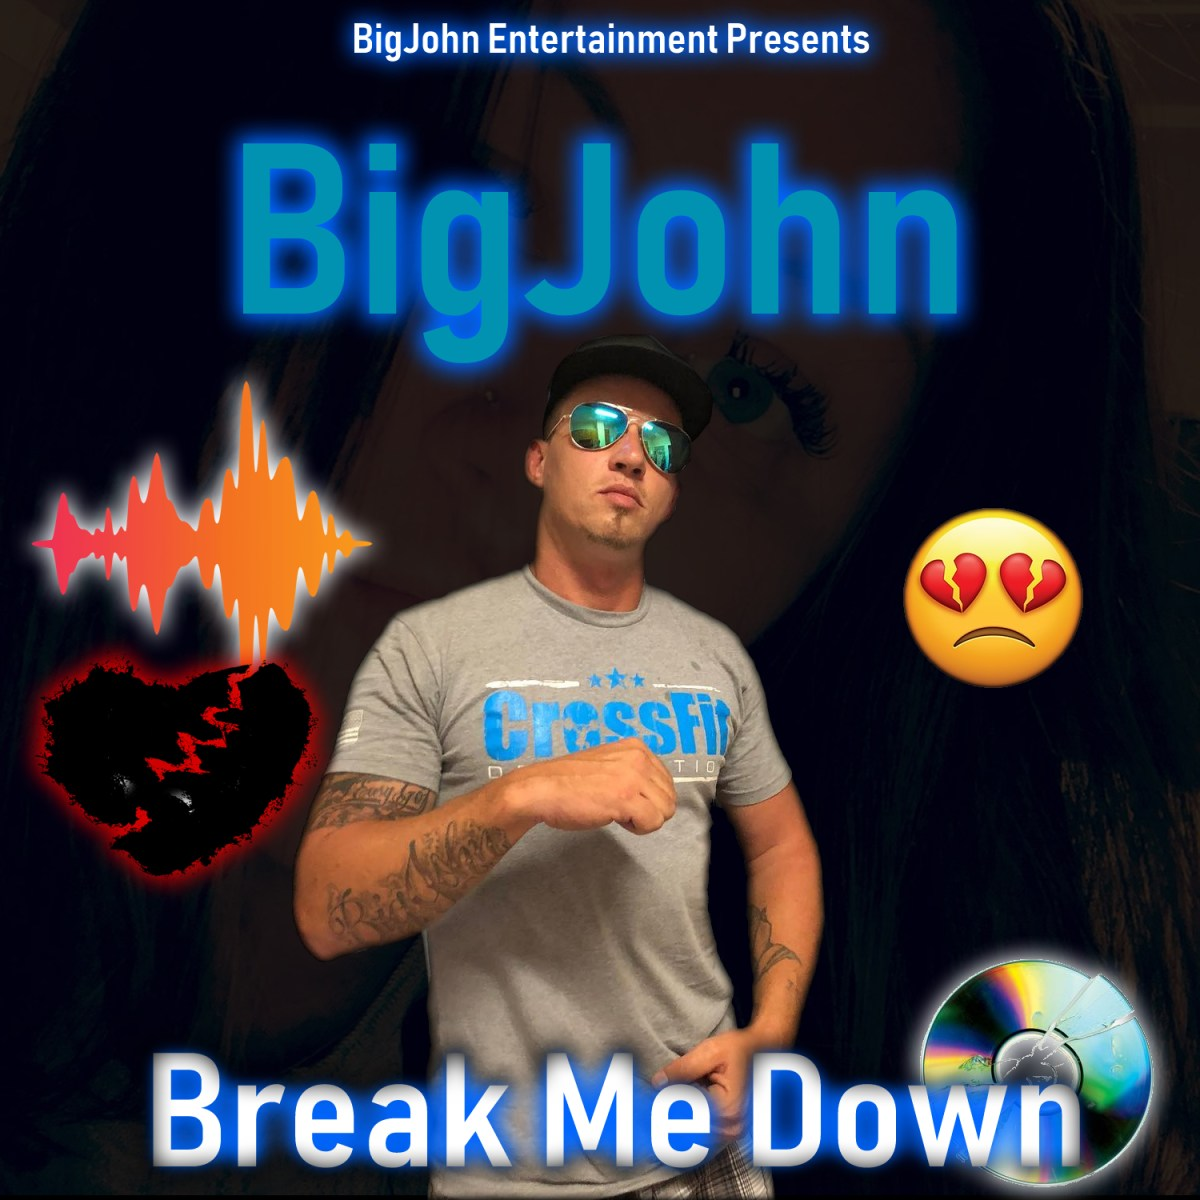 BigJohn releases a new hit single